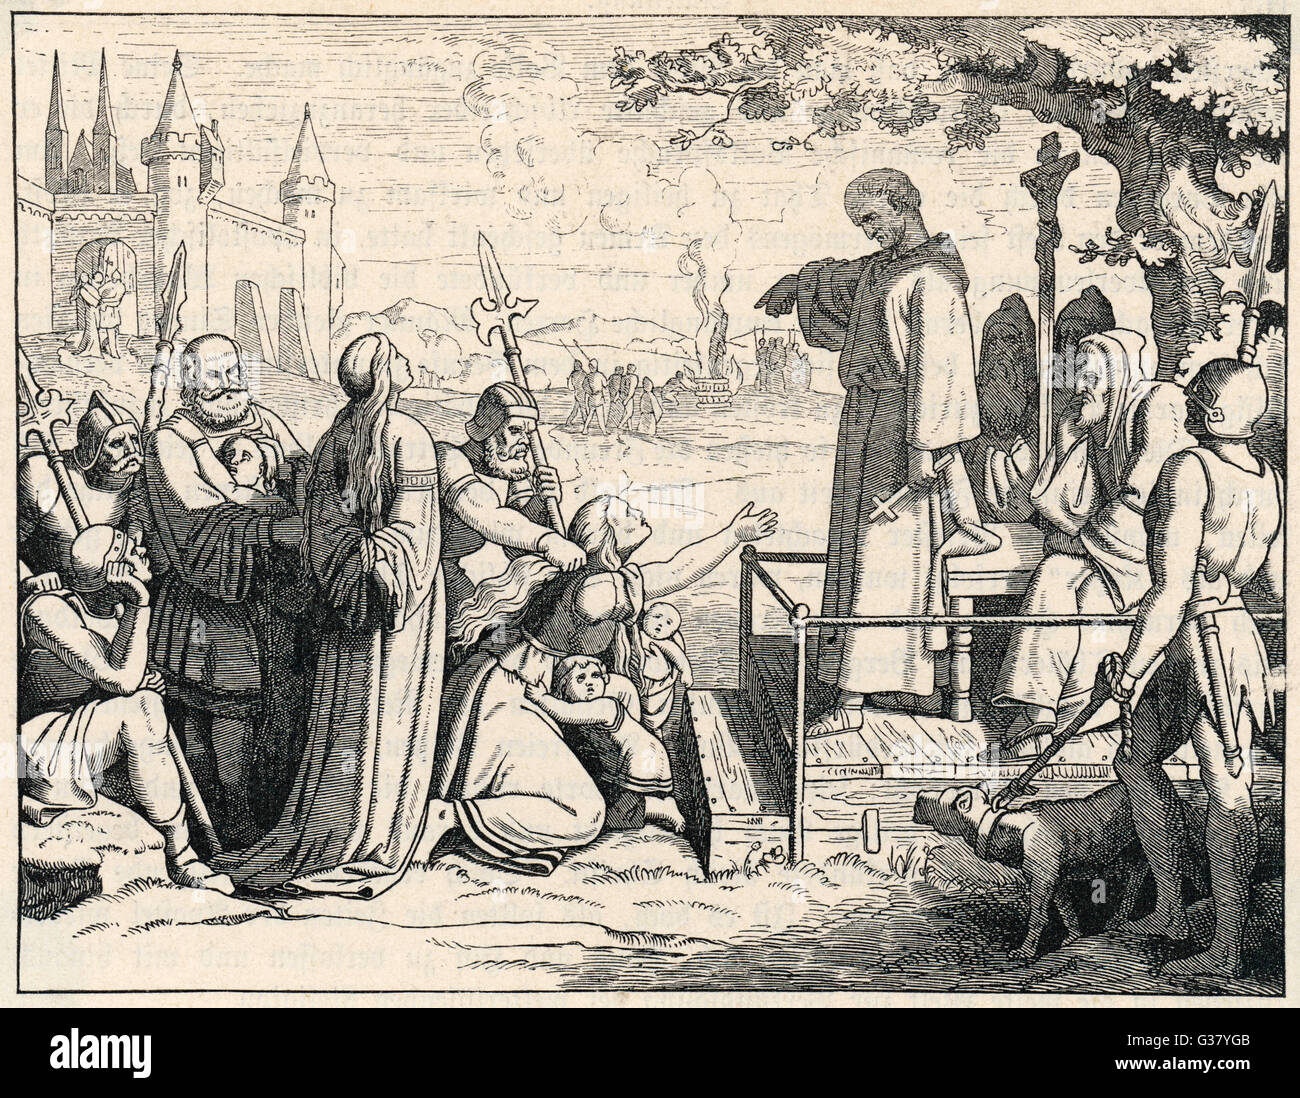 The notorious German witch-finder, Konrad von Marburg, sends another victim to the torture-chamber and the stake. - Stock Image